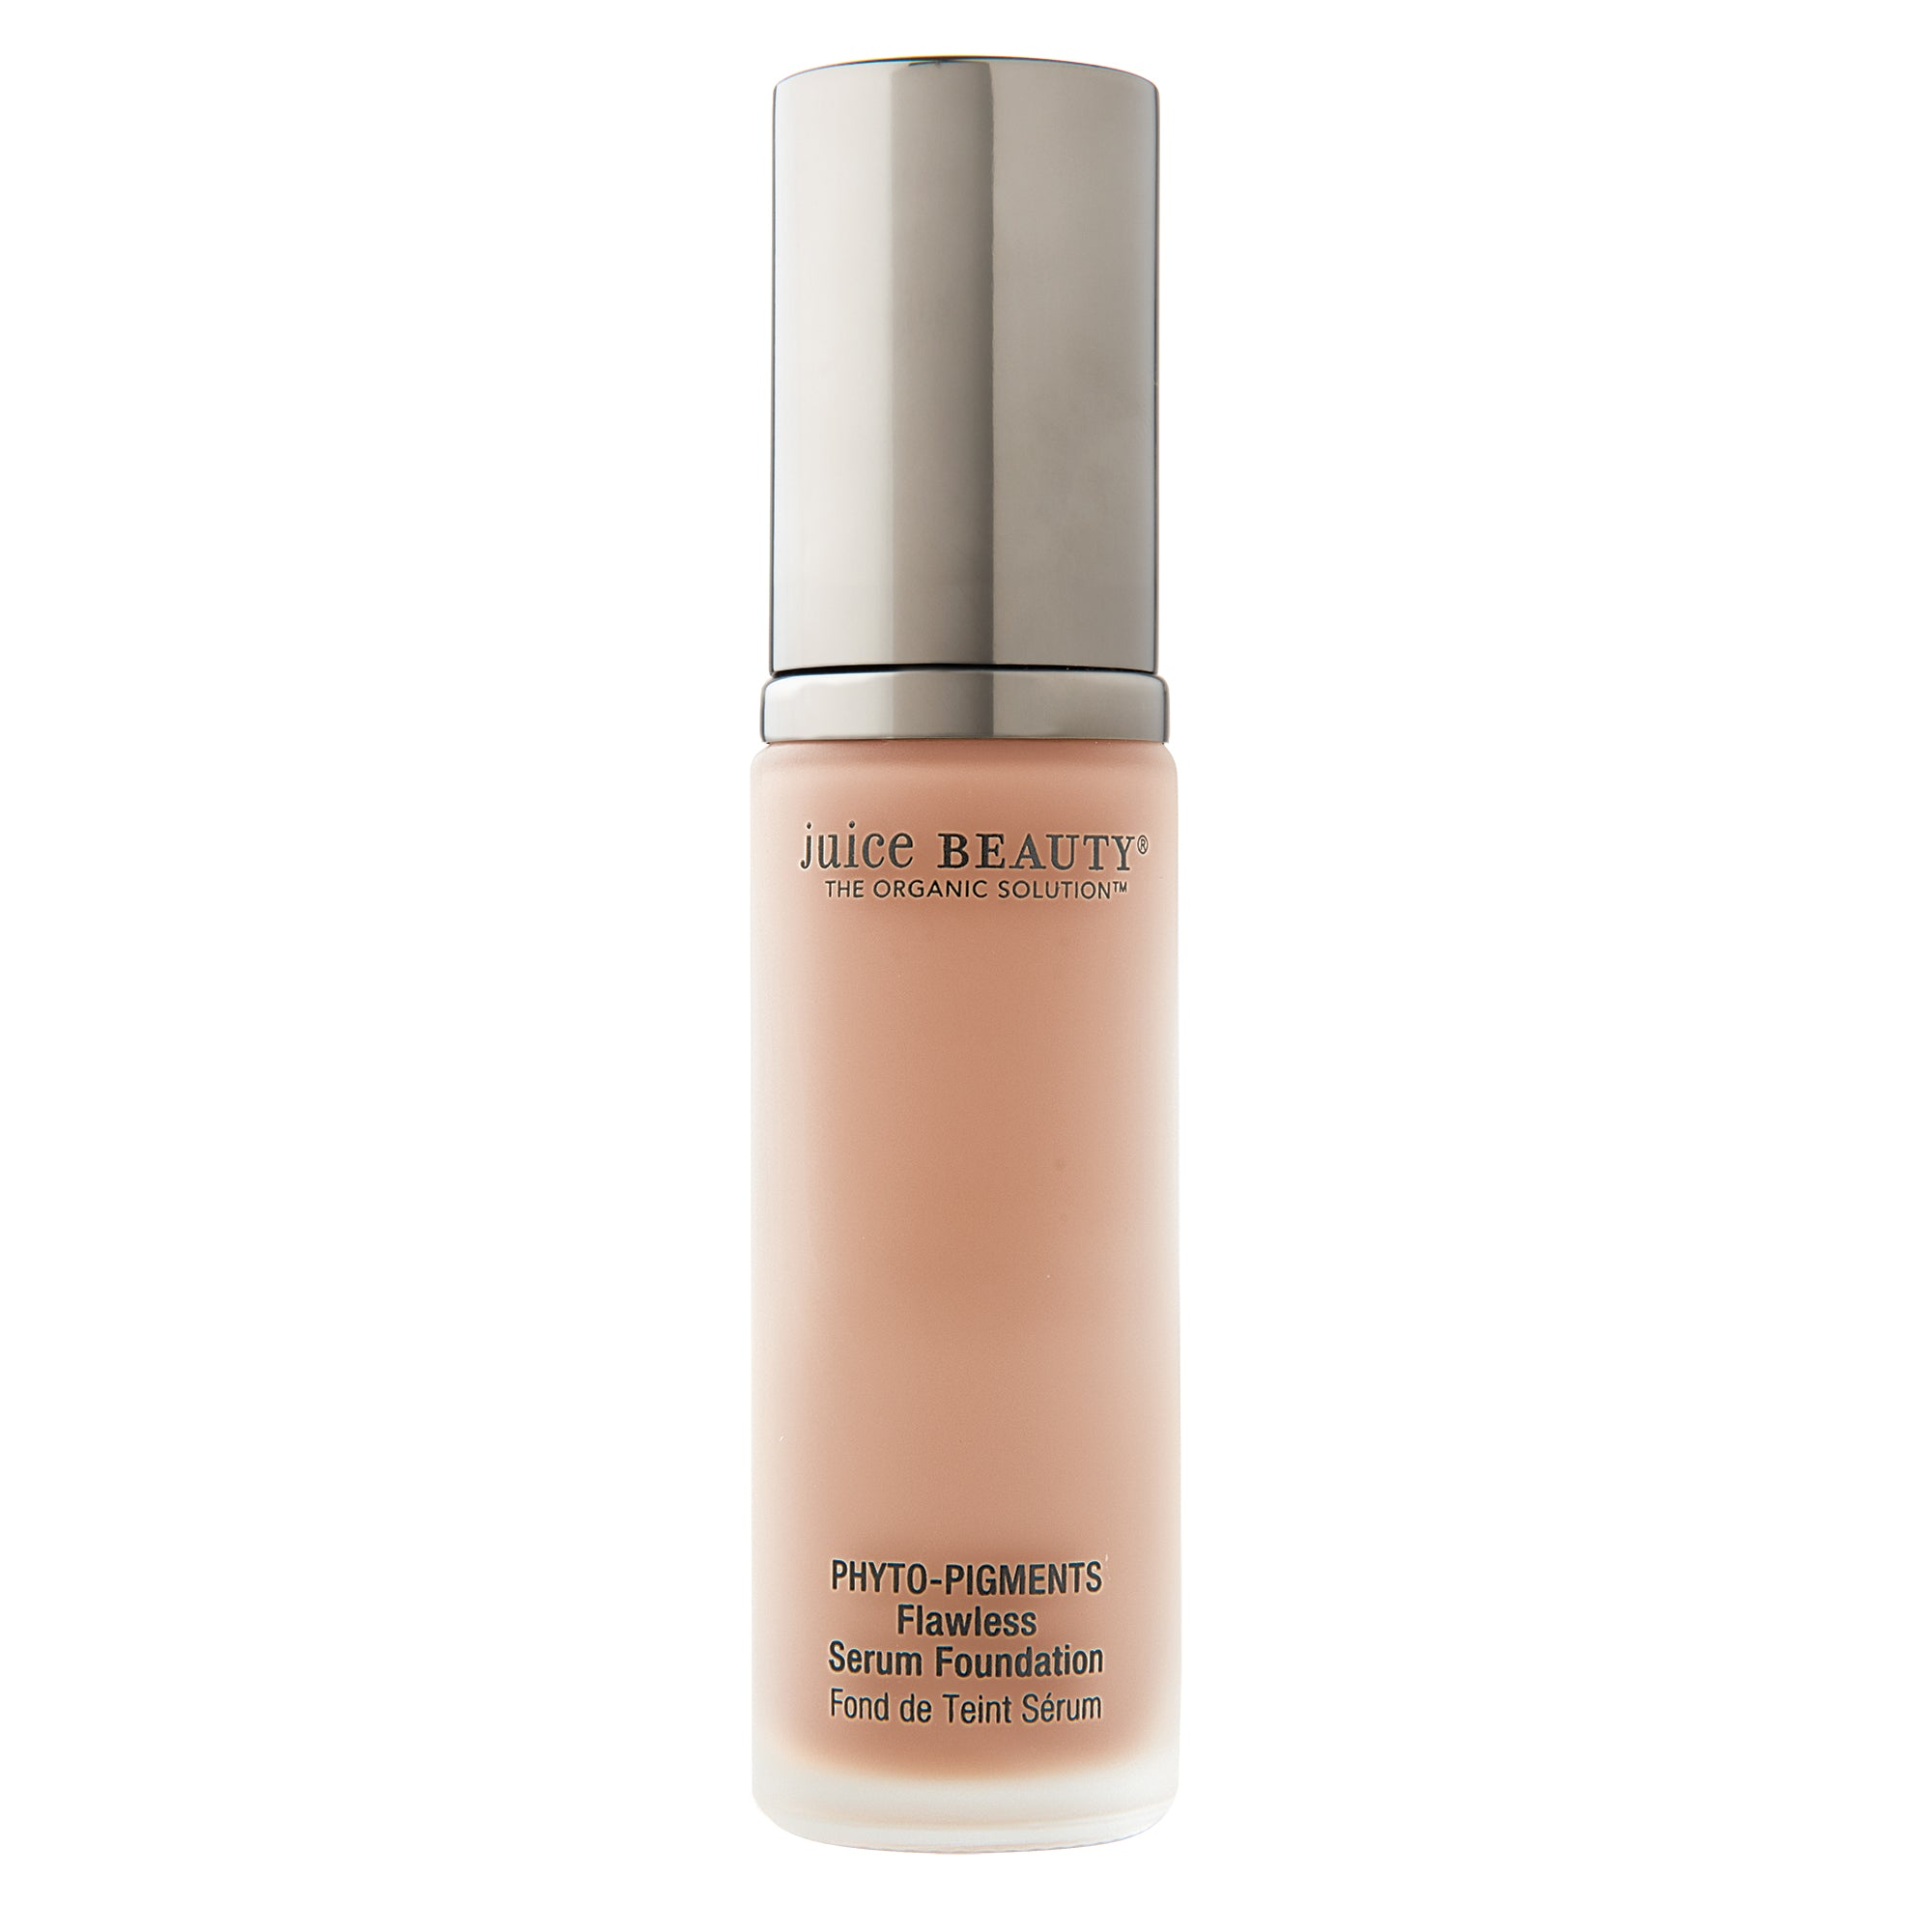 Flawless Serum Foundation